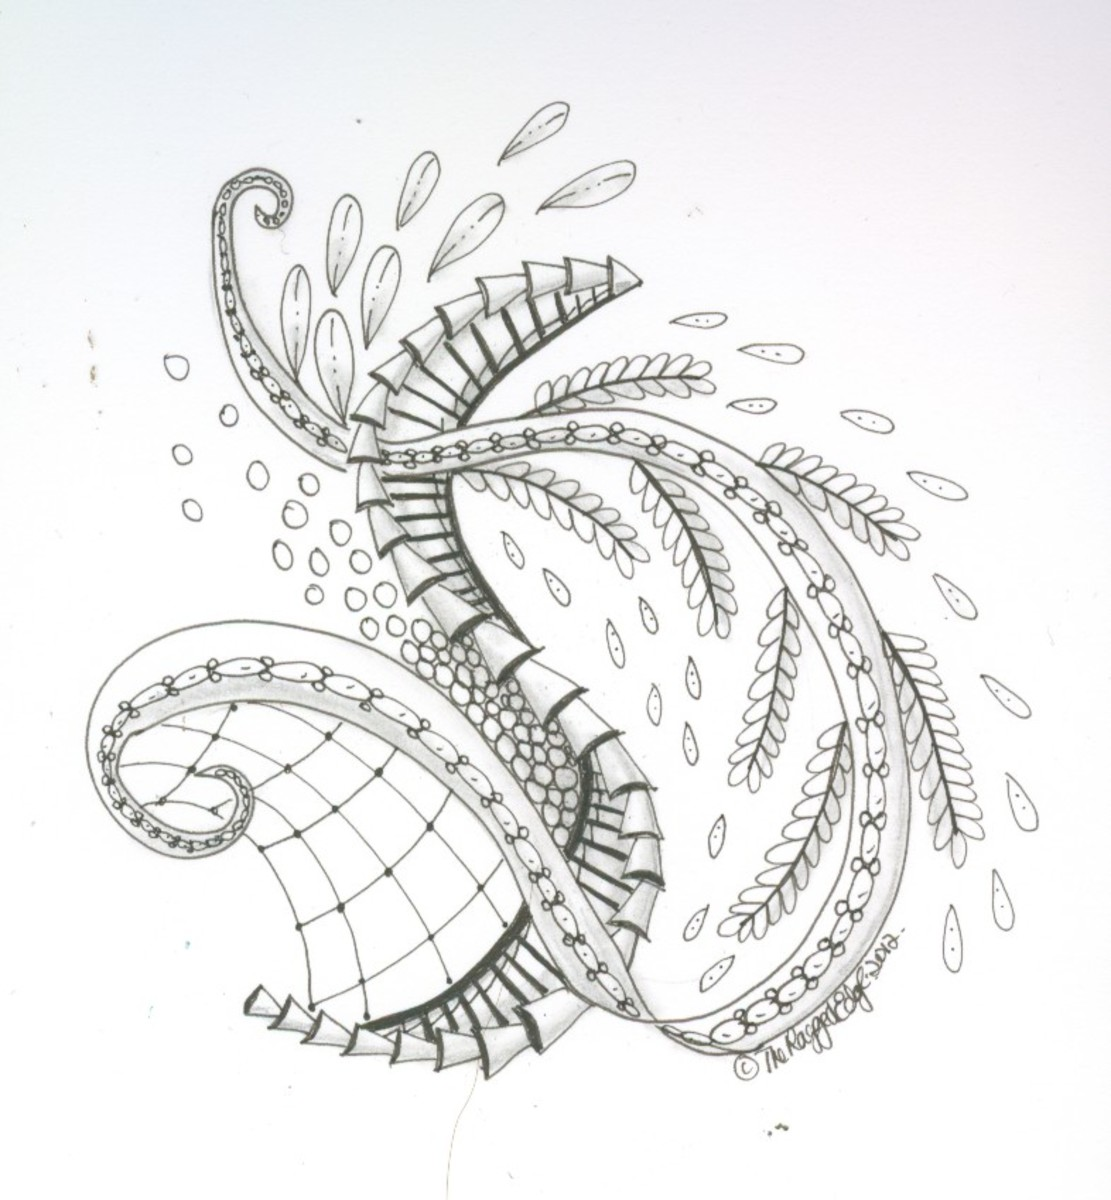 Zentangle-inspired pattern using elements of fern, book and tile tangles.